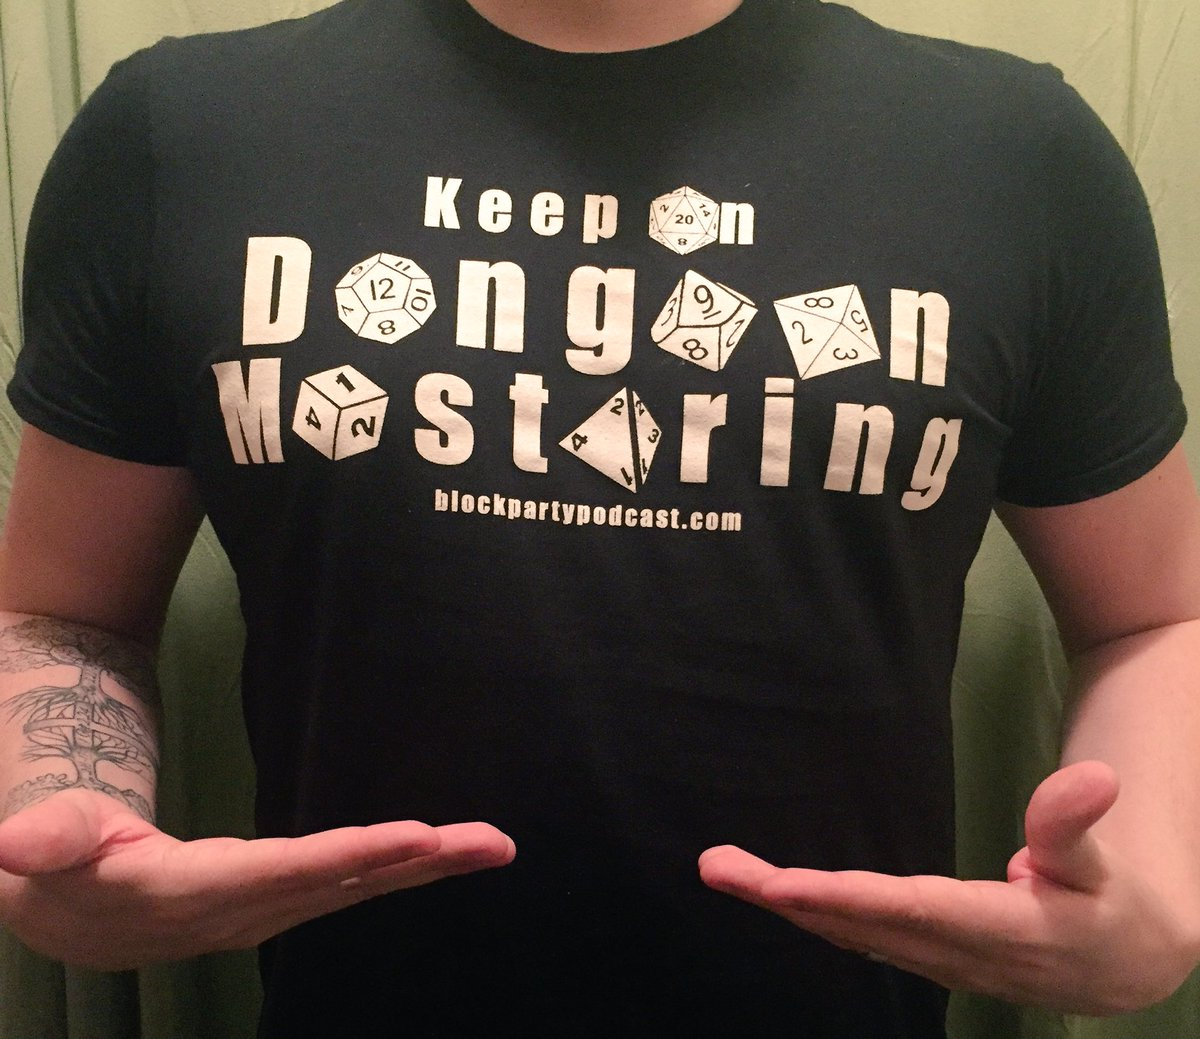 """Retweet &amp; Follow for a chance to win an exclusive """"Keep On Dungeon Mastering"""" T-shirt! 5 winners will be chosen! Winners will be announced May 25! (Small, medium &amp; large sizes only. Colors will vary) #dnd #rpg #tabletop #dungeonmaster #dmb #podcast <br>http://pic.twitter.com/sVX8hQqnKY"""